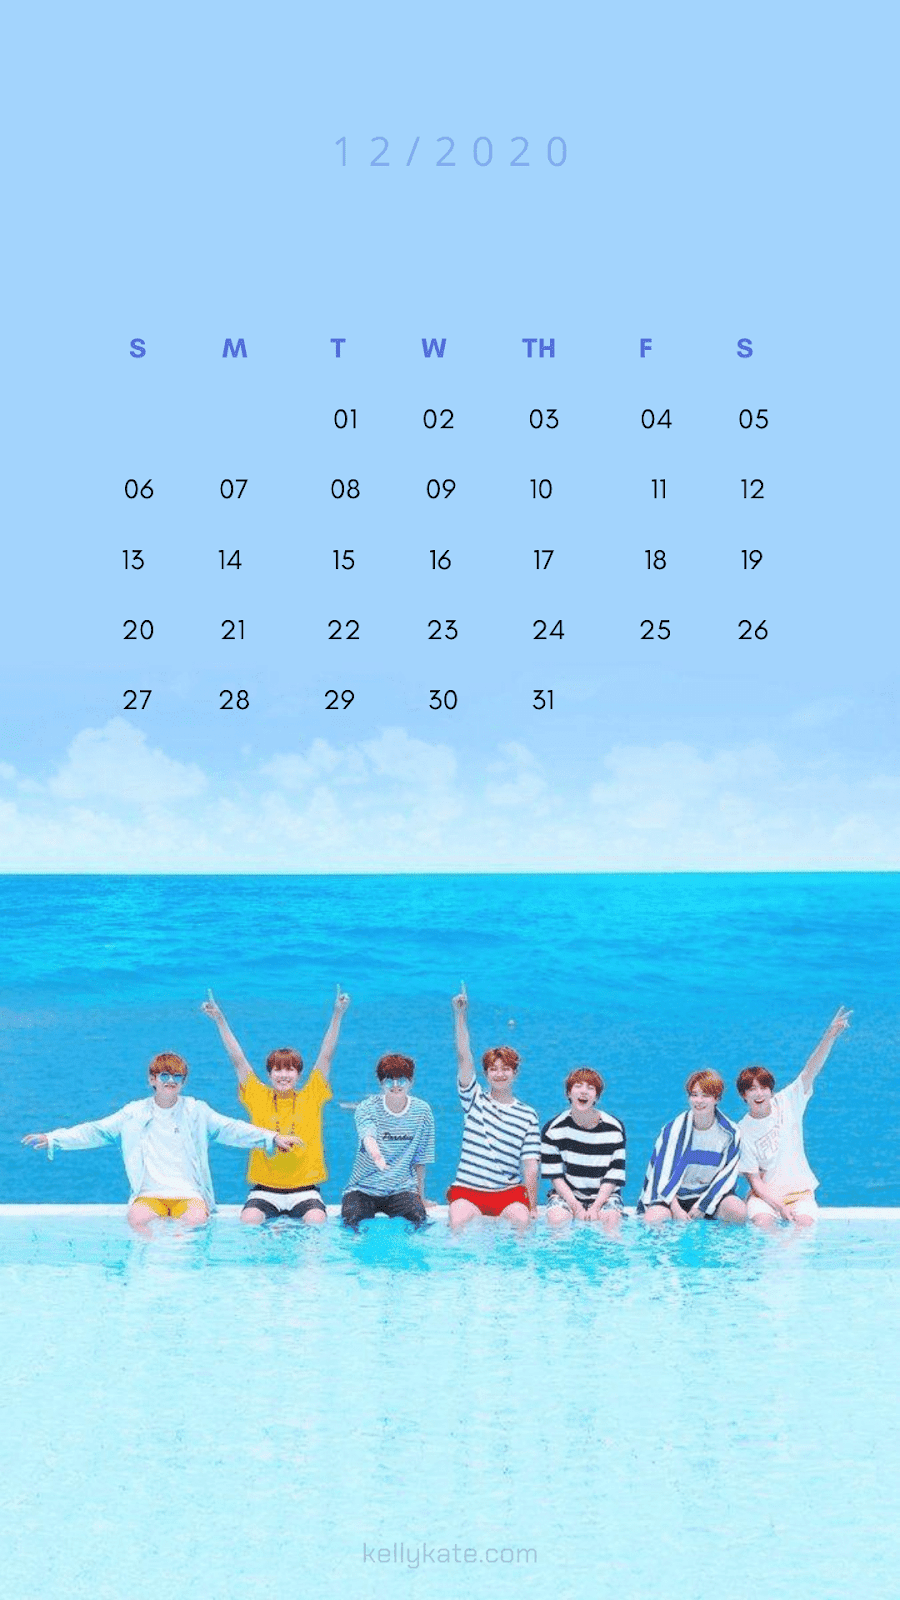 #calendariobts2020 #wallpaperbts